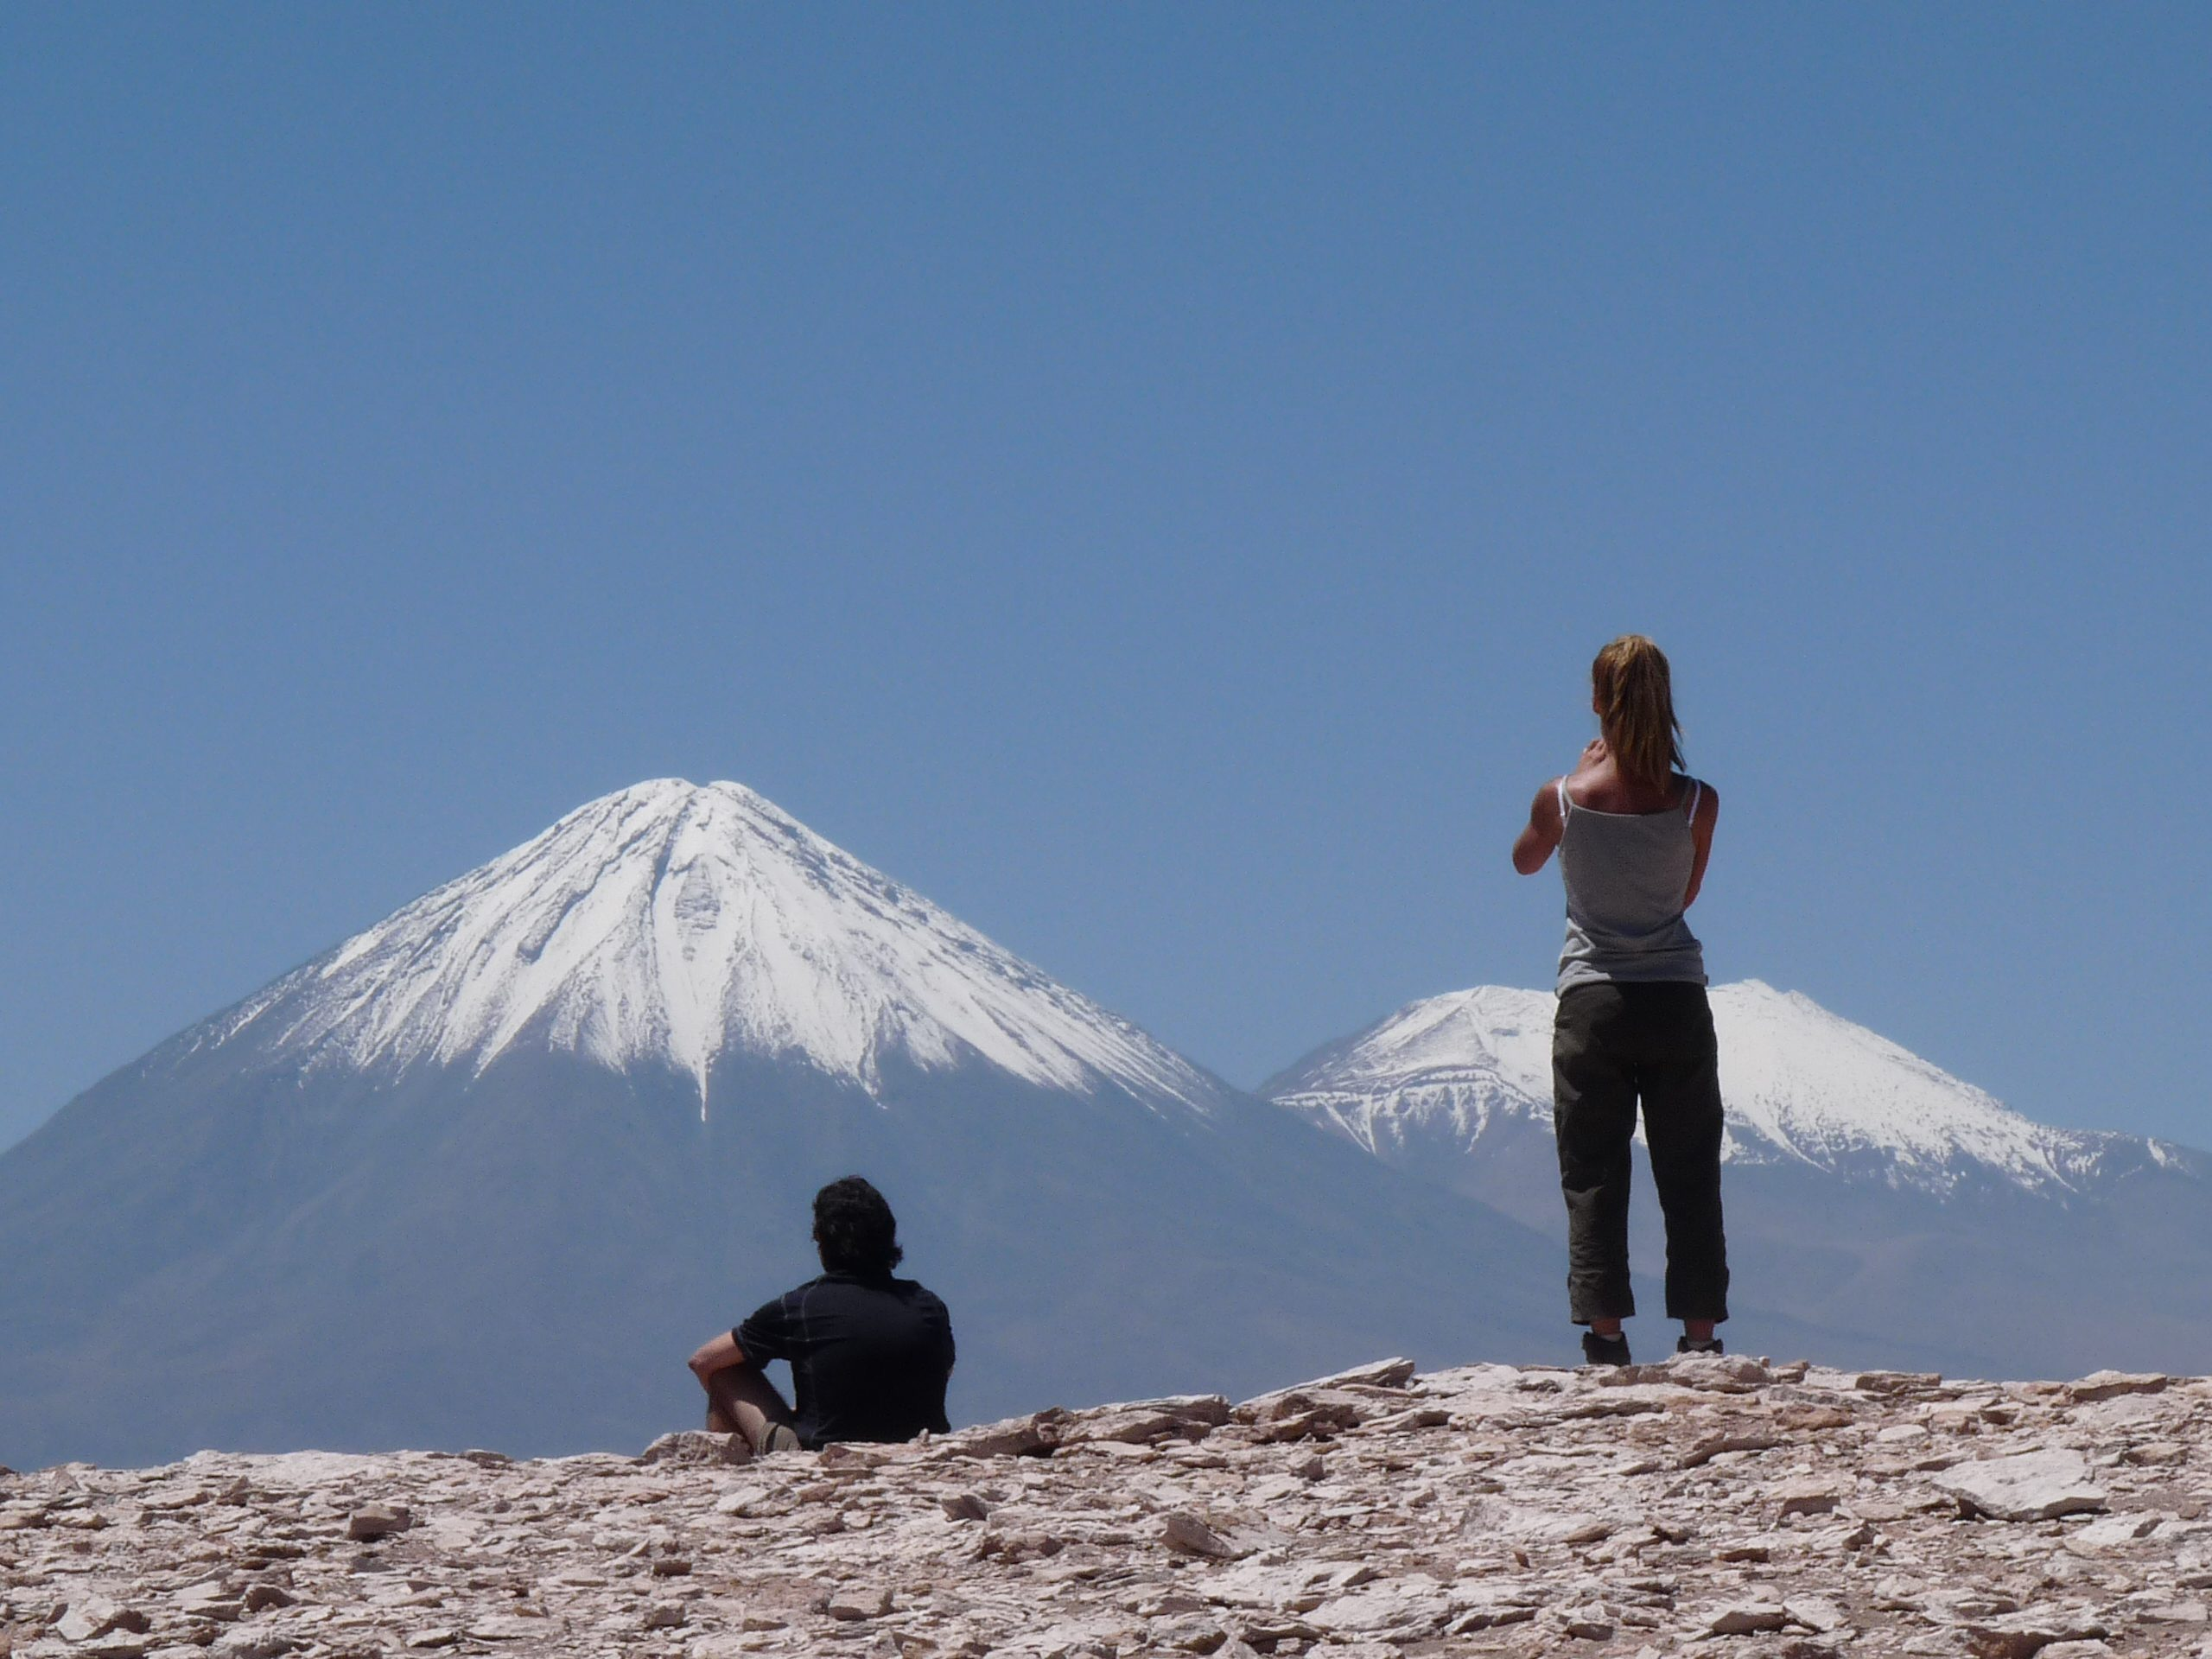 two people with snow capped mountains in the background